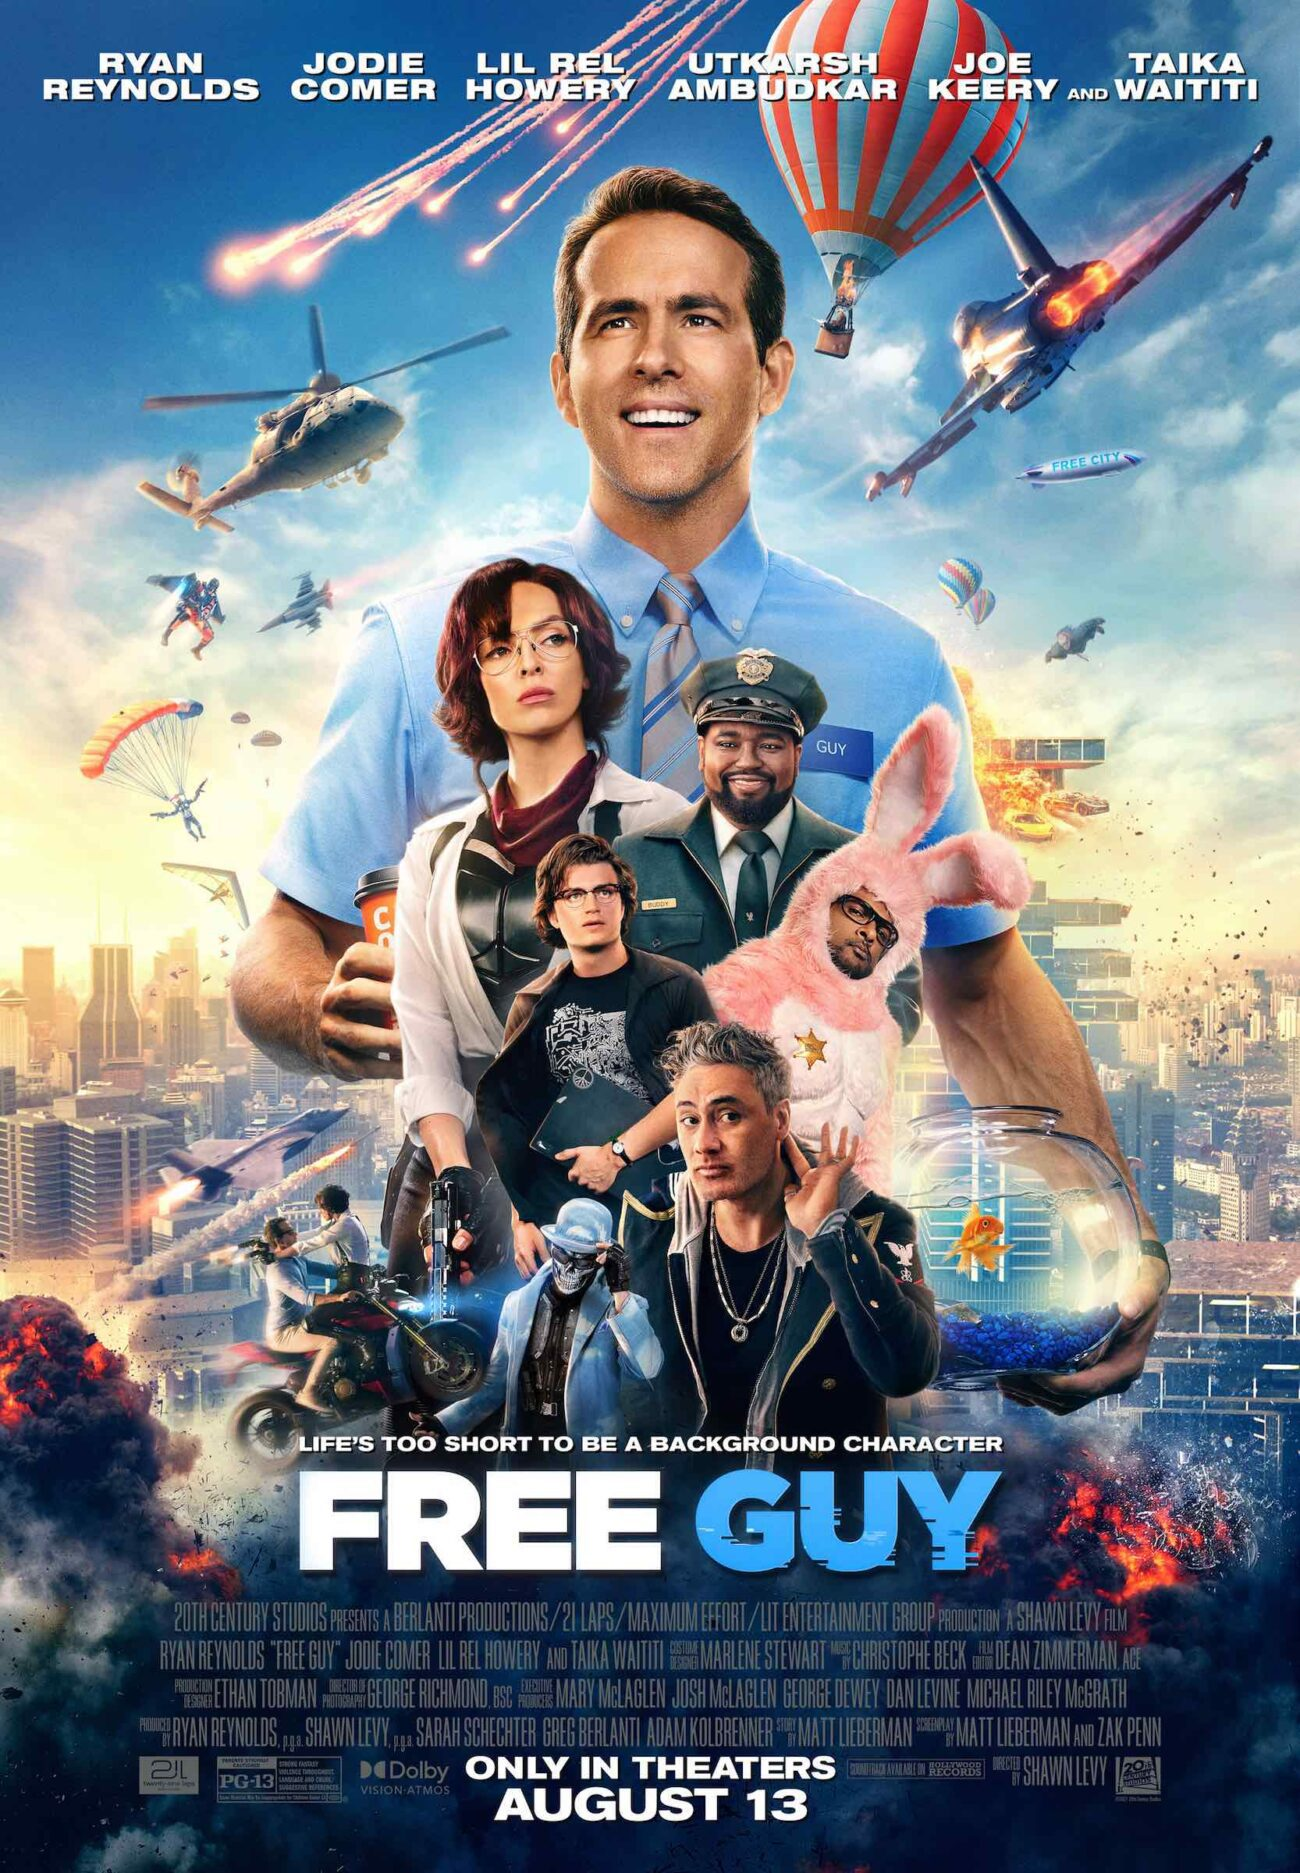 There's only one week left before the premiere of Ryan Reynolds's newest movie 'Free Guy'. Get your controllers ready and dive into these early reactions!